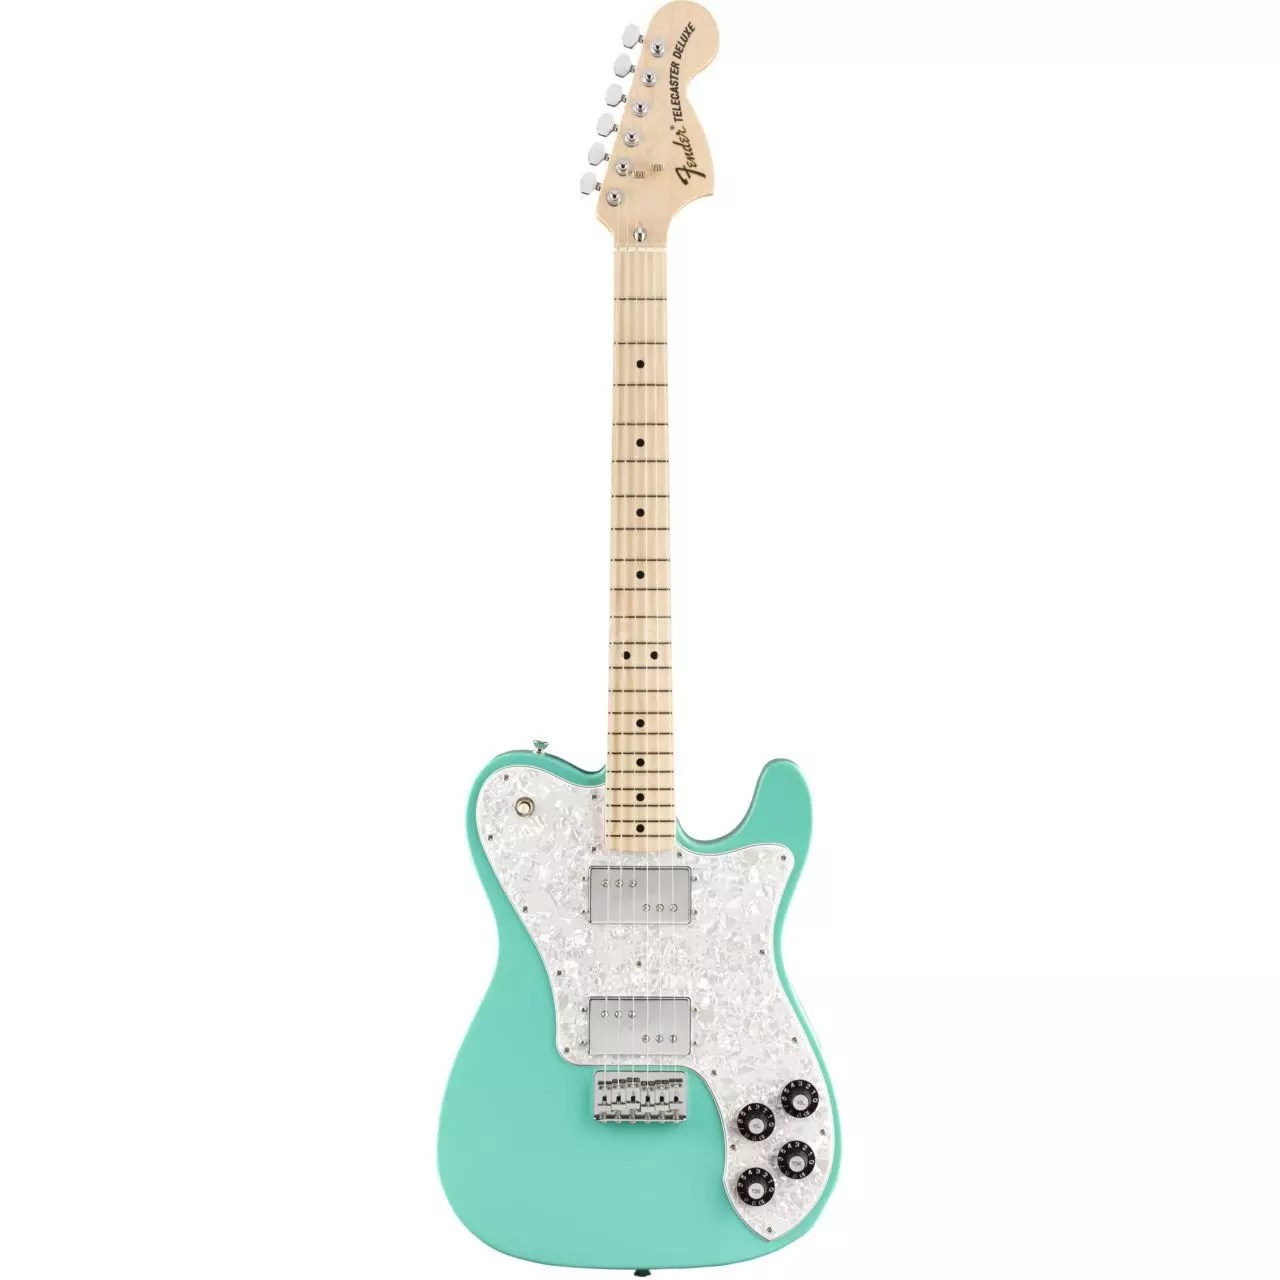 fender made in japan 2020 limited edition traditional 70s tele deluxe mn sea foam green